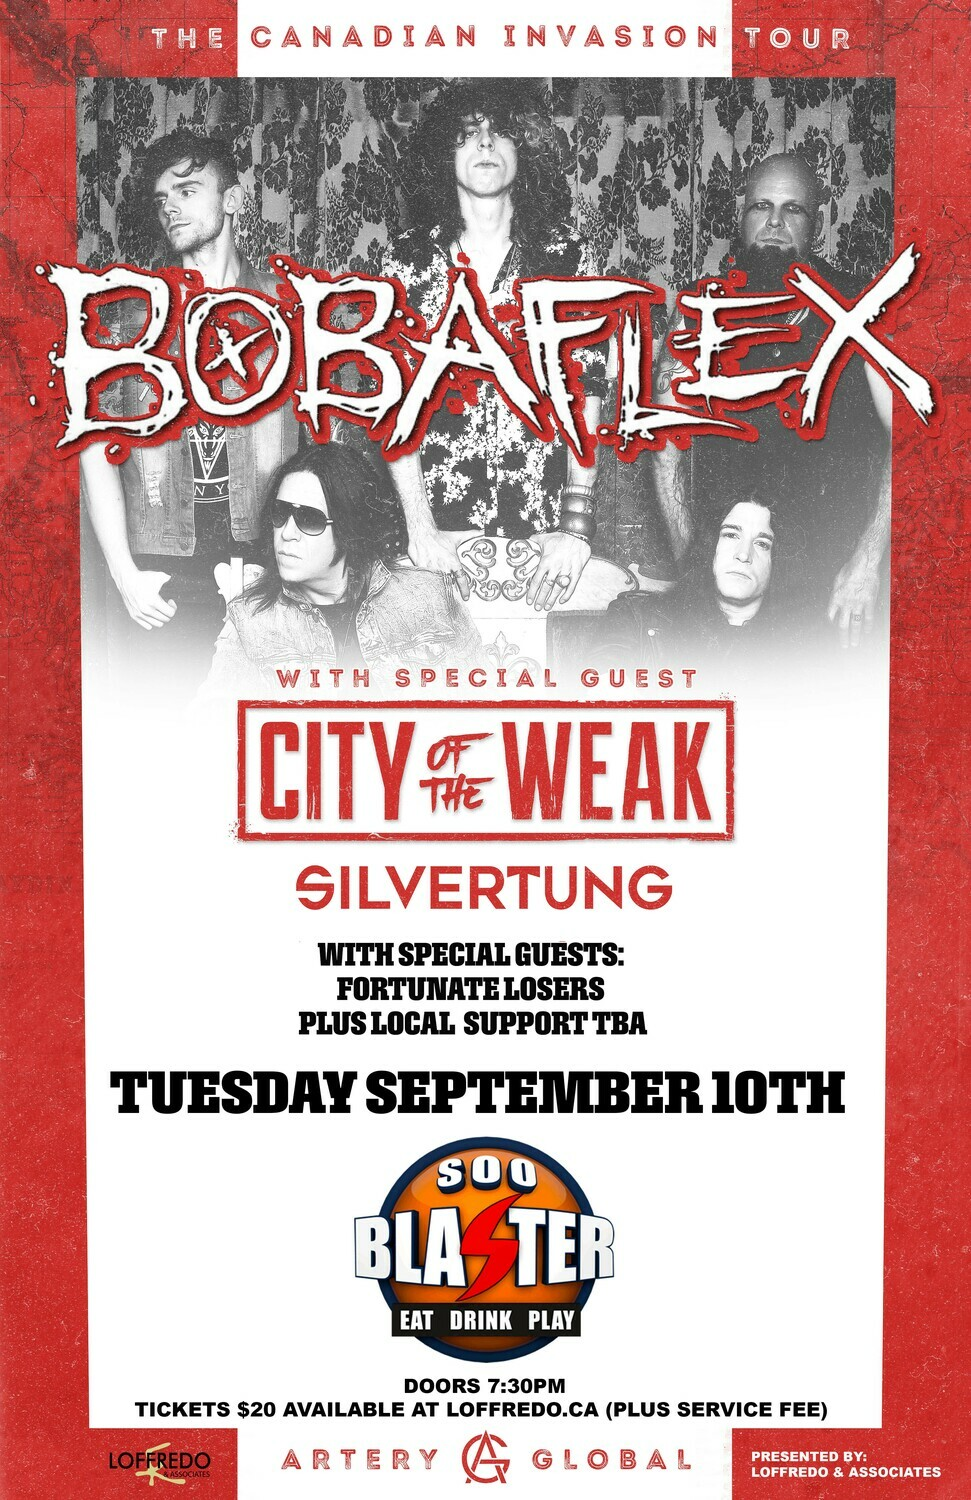 Bobaflex - Live In Sault Ste. Marie at Soo Blaster - Sept 10